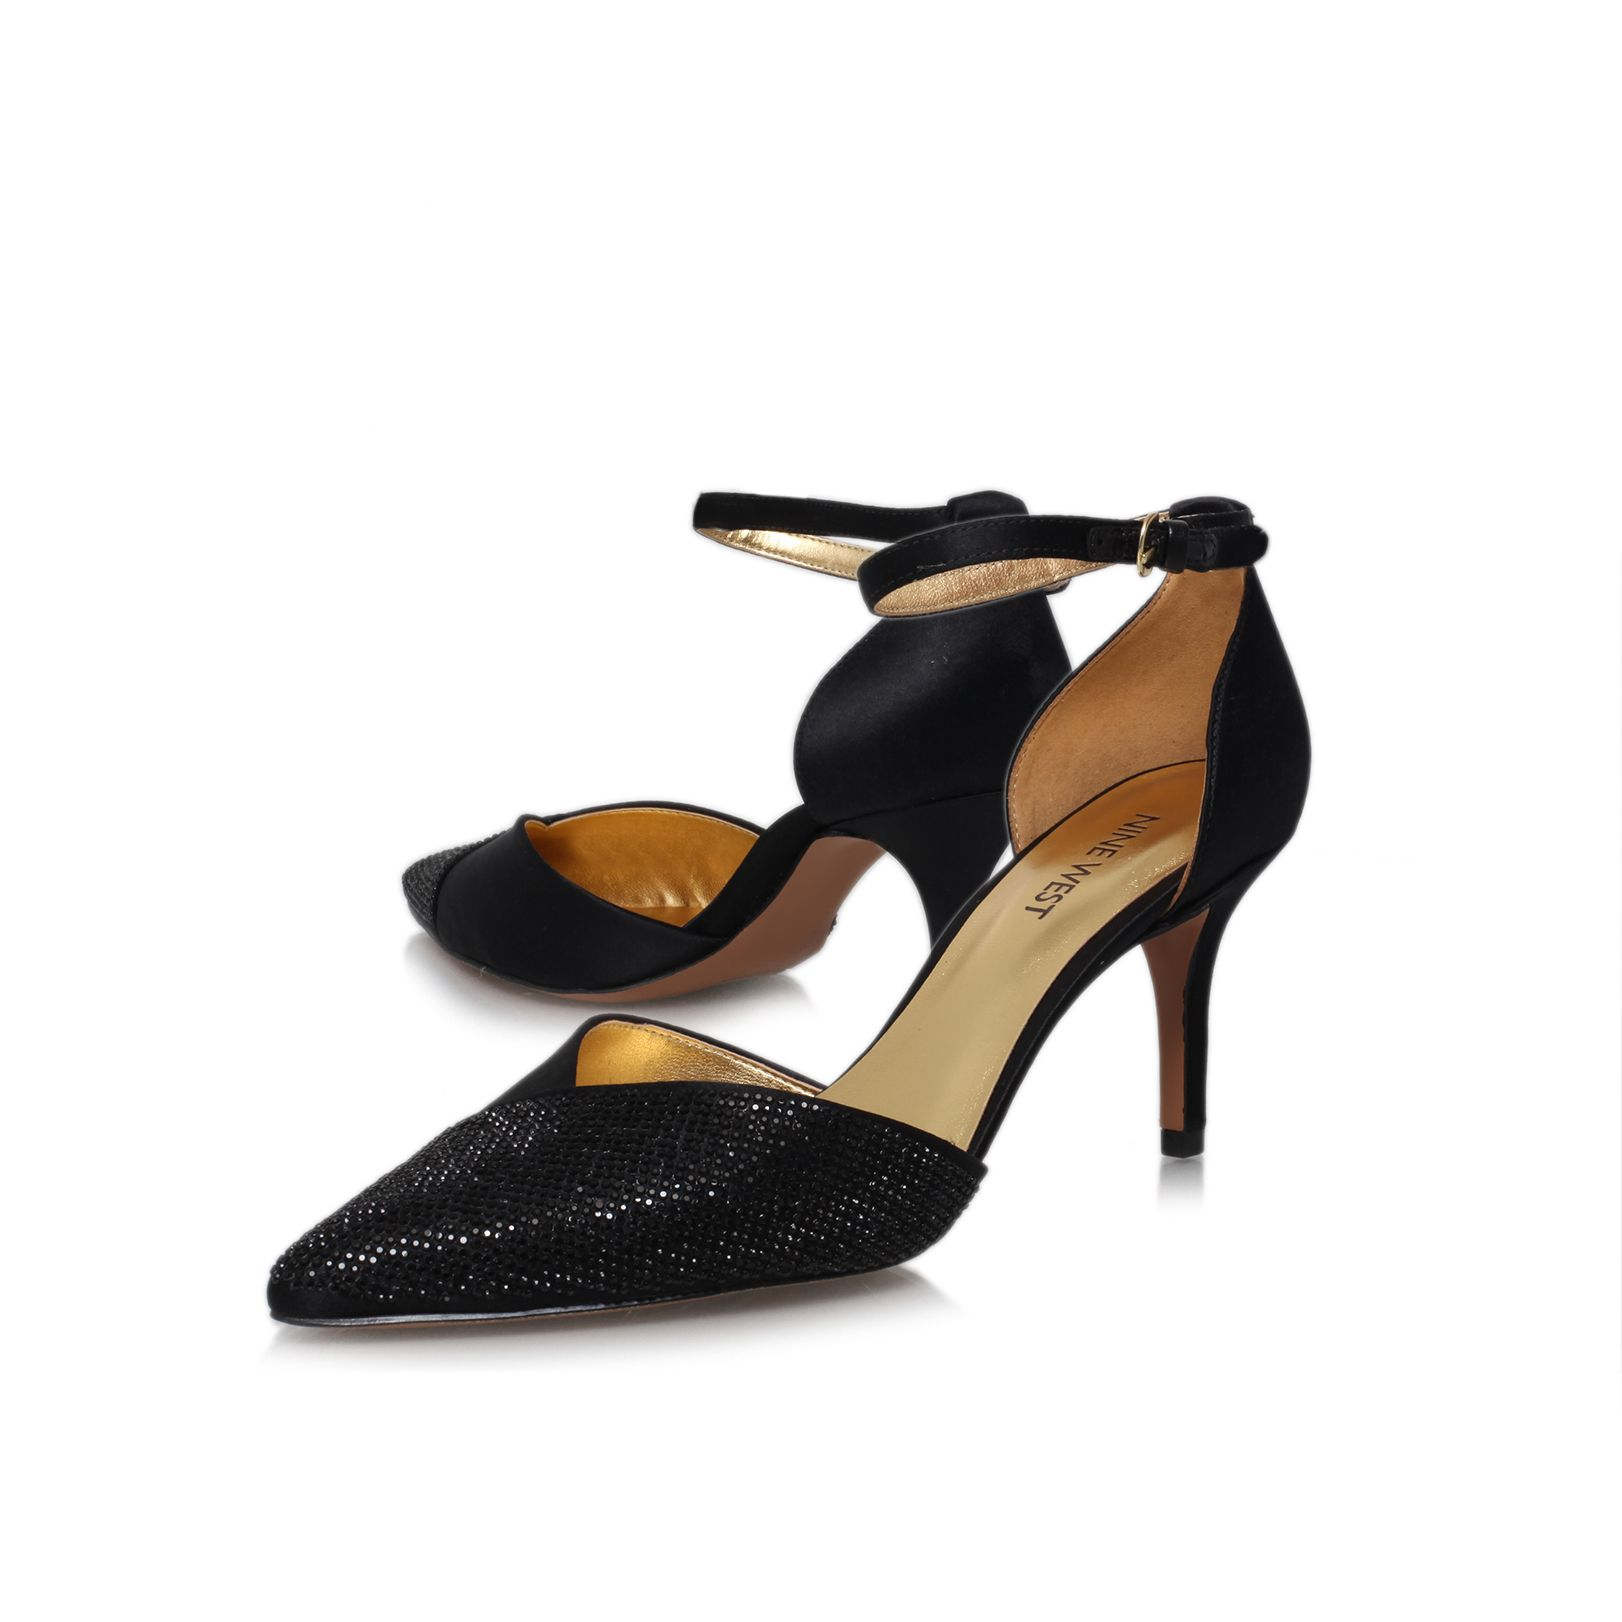 Knowledge2 low heeled court shoes